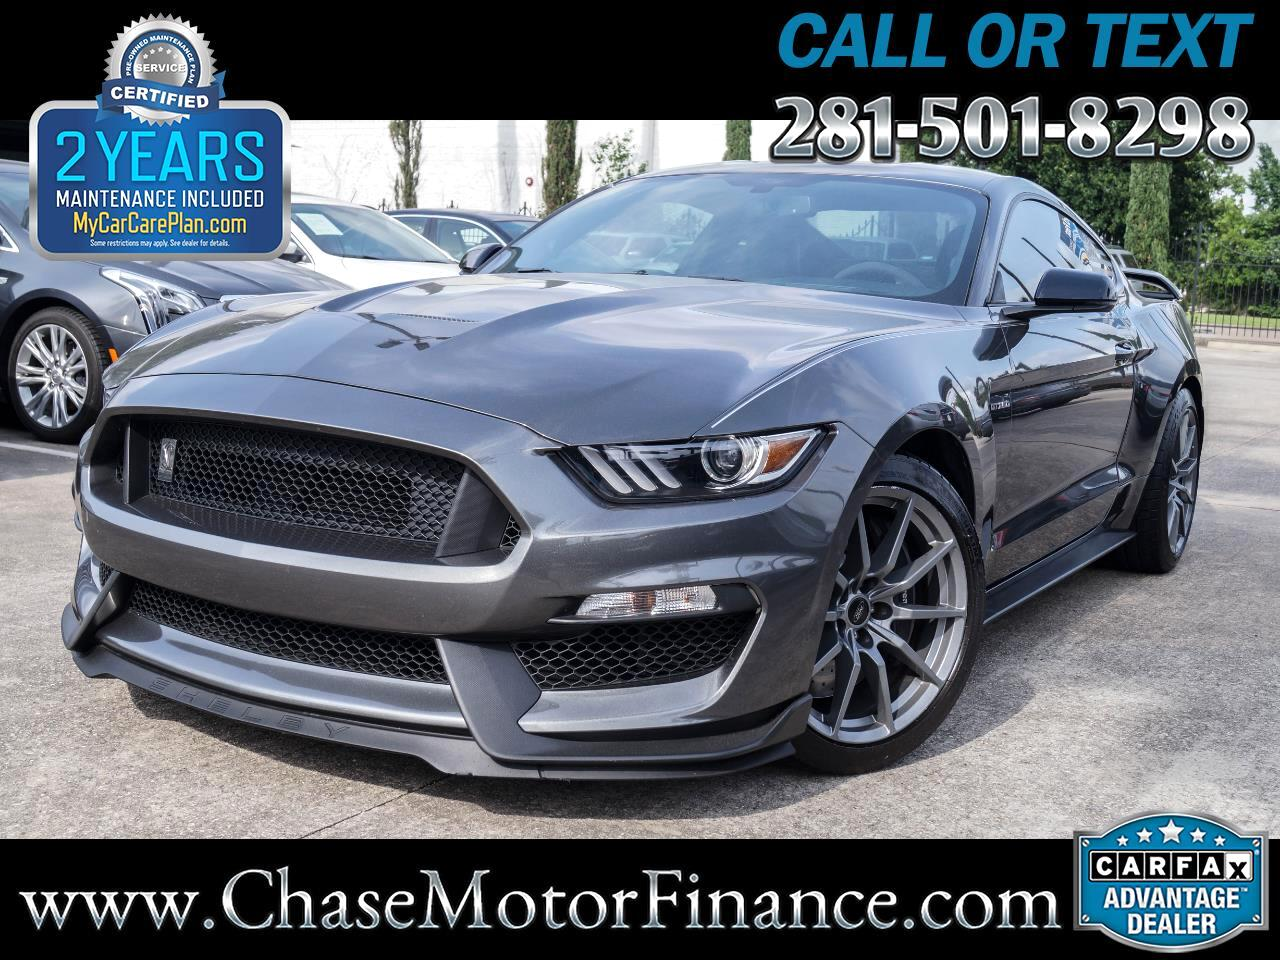 2016 Ford Shelby GT350 Cobra